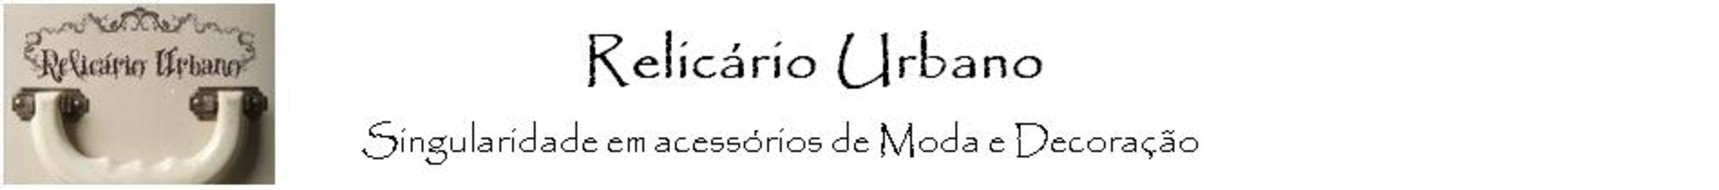 RELICRIO URBANO